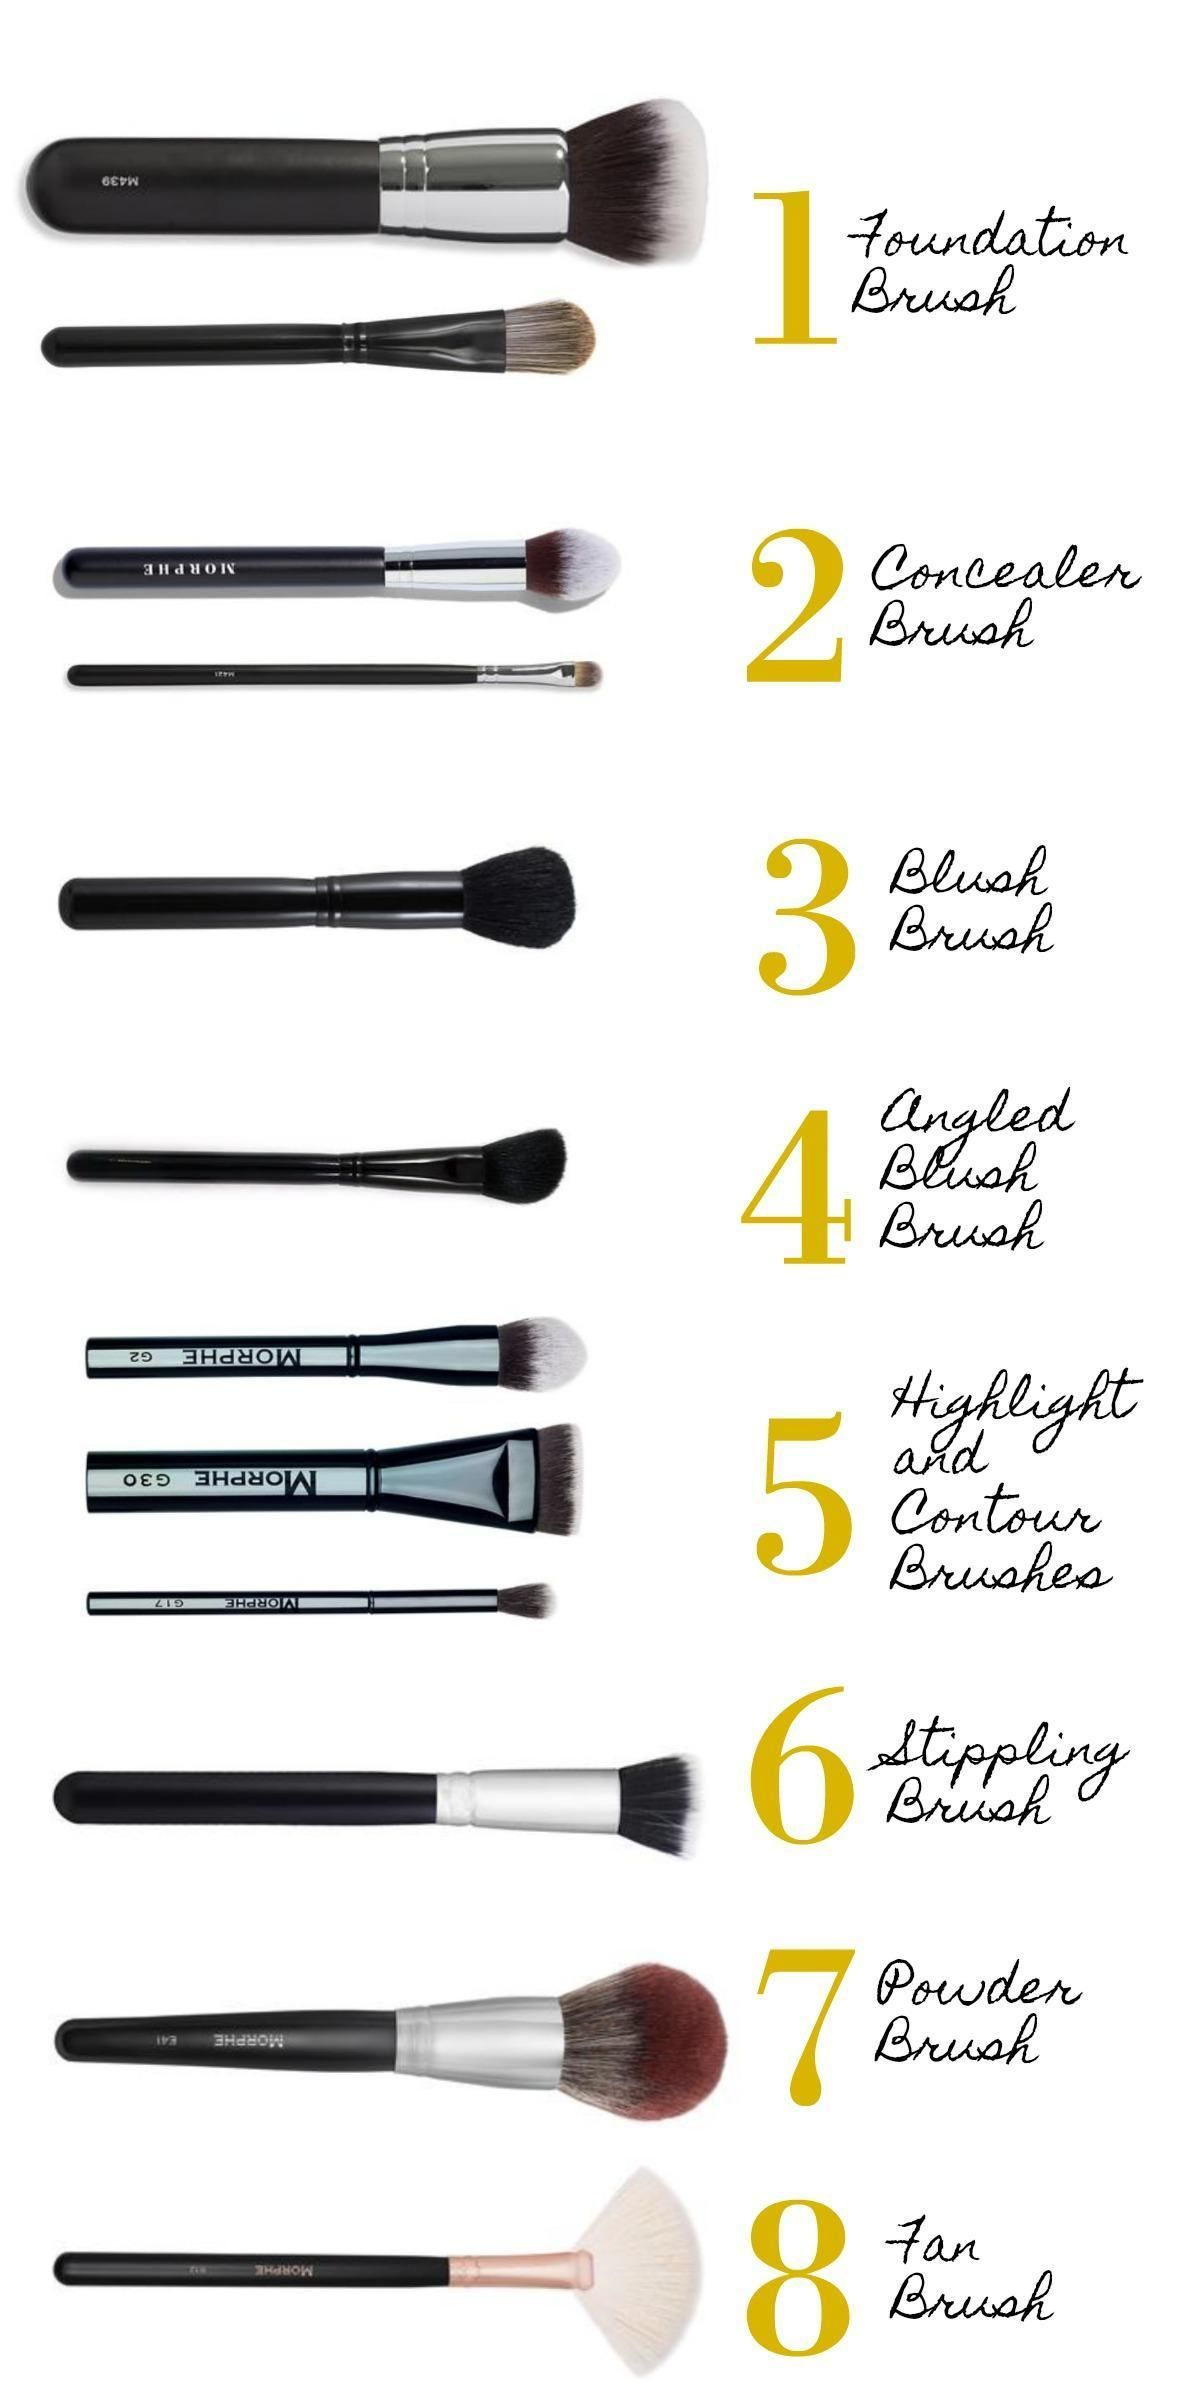 Skin Care Tips That Everyone Should Know Skin Care Tips That Everyone Should Know Makeup Products makeup products for beginners